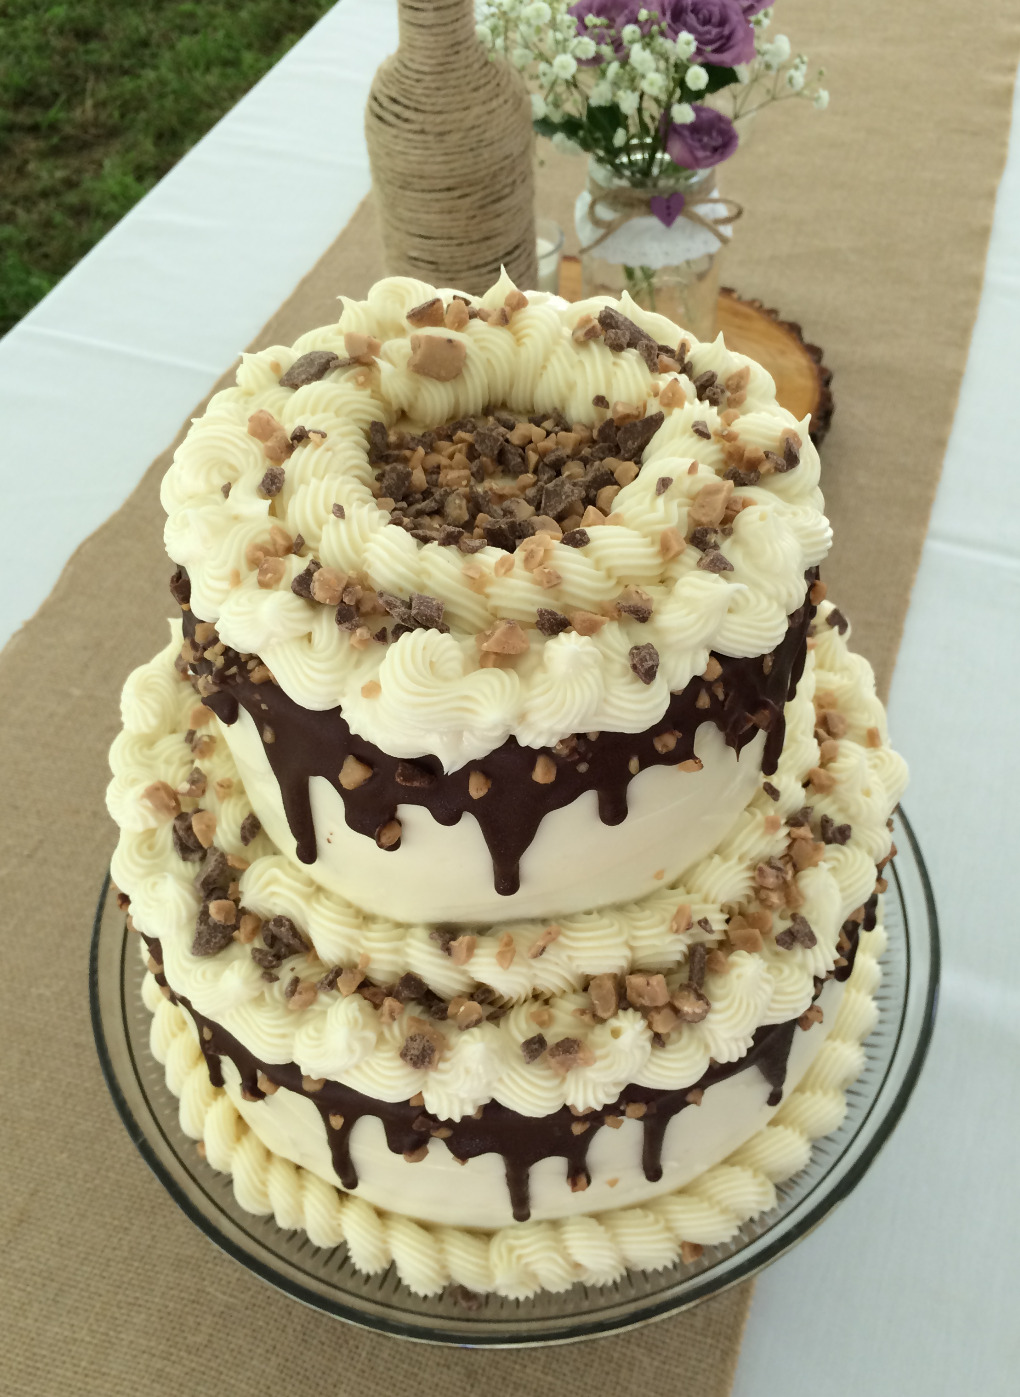 Chocolate Caramel Toffee wedding cake